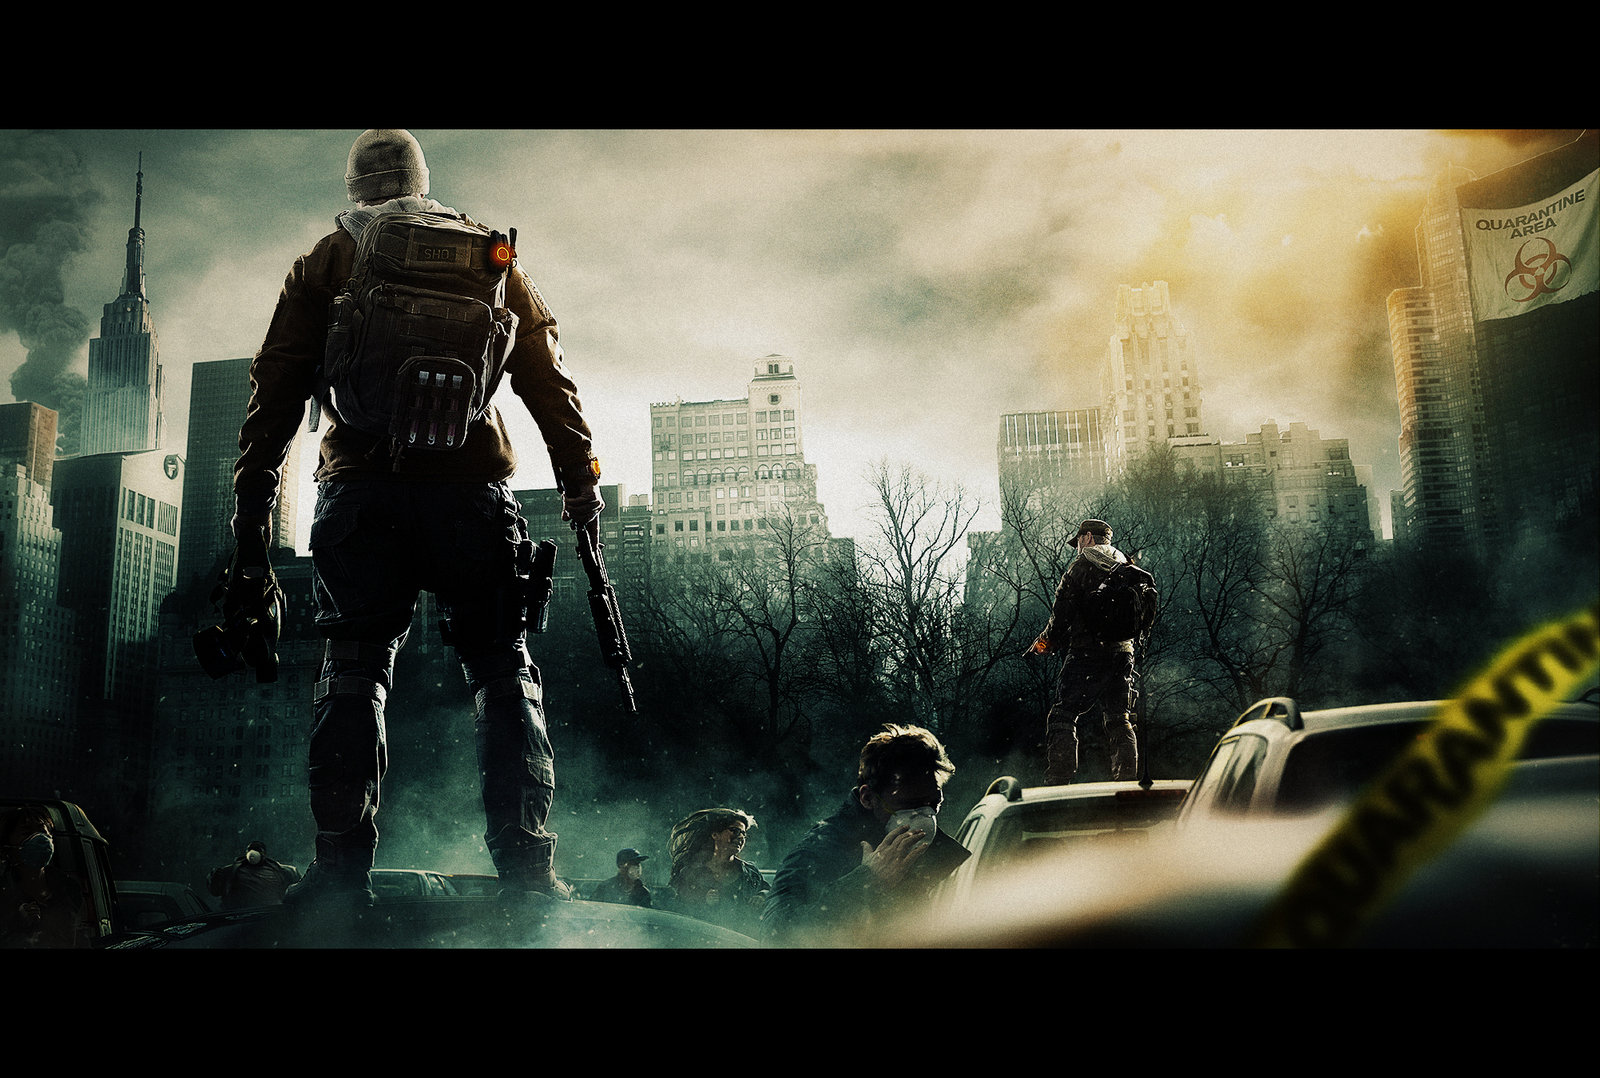 Tom Clancys The Division HD Wallpaper RoyalWallpaperBiz 1600x1078